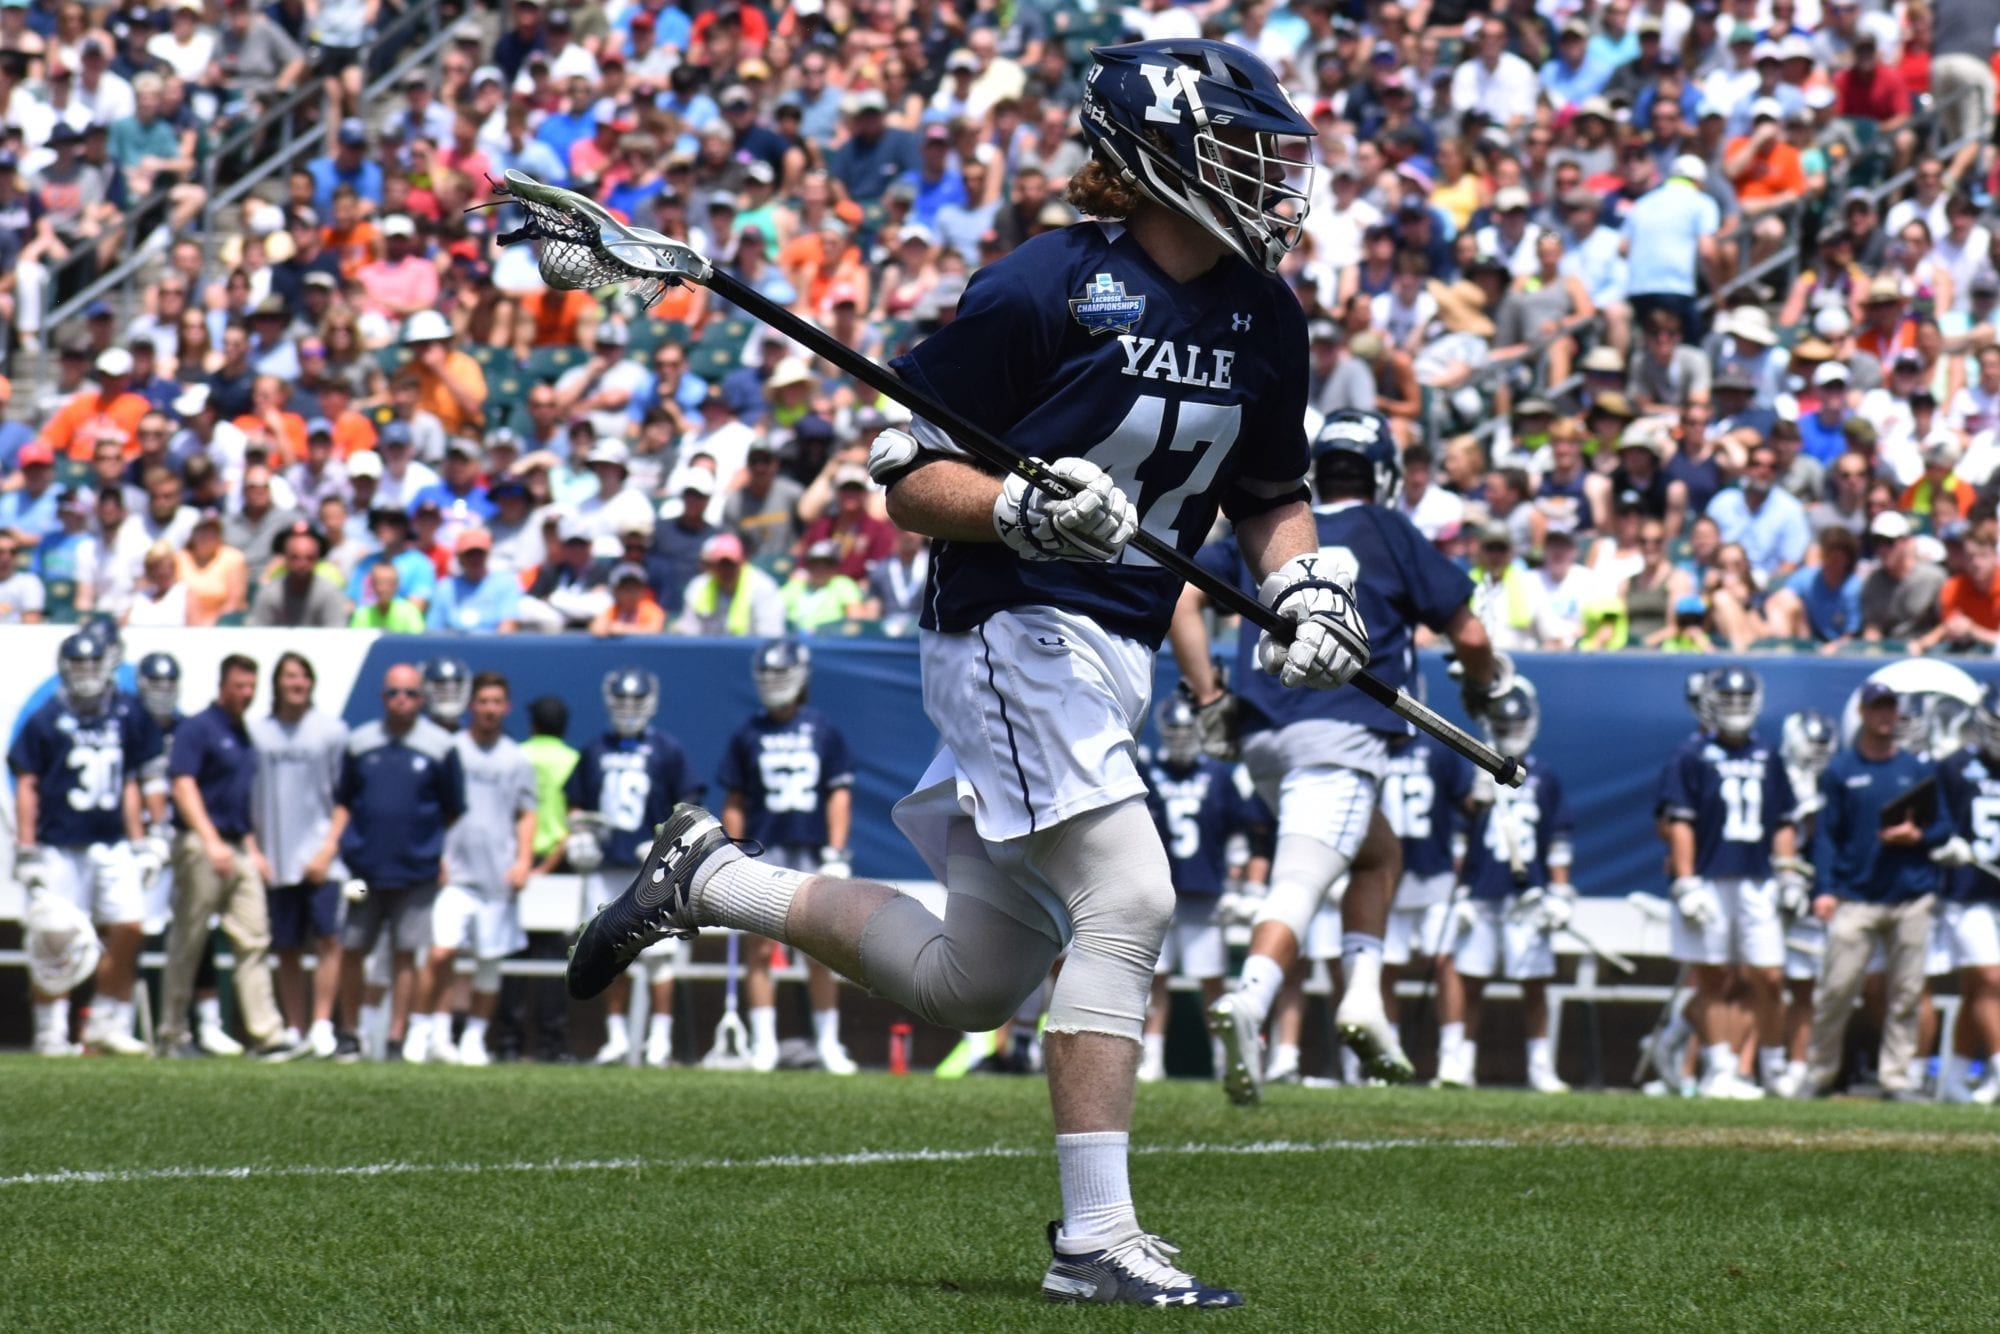 Hynes PLL Draft, MLL Draft: Making Sense of Two Leagues, One Class photo Ryan Conwell Yale 2019